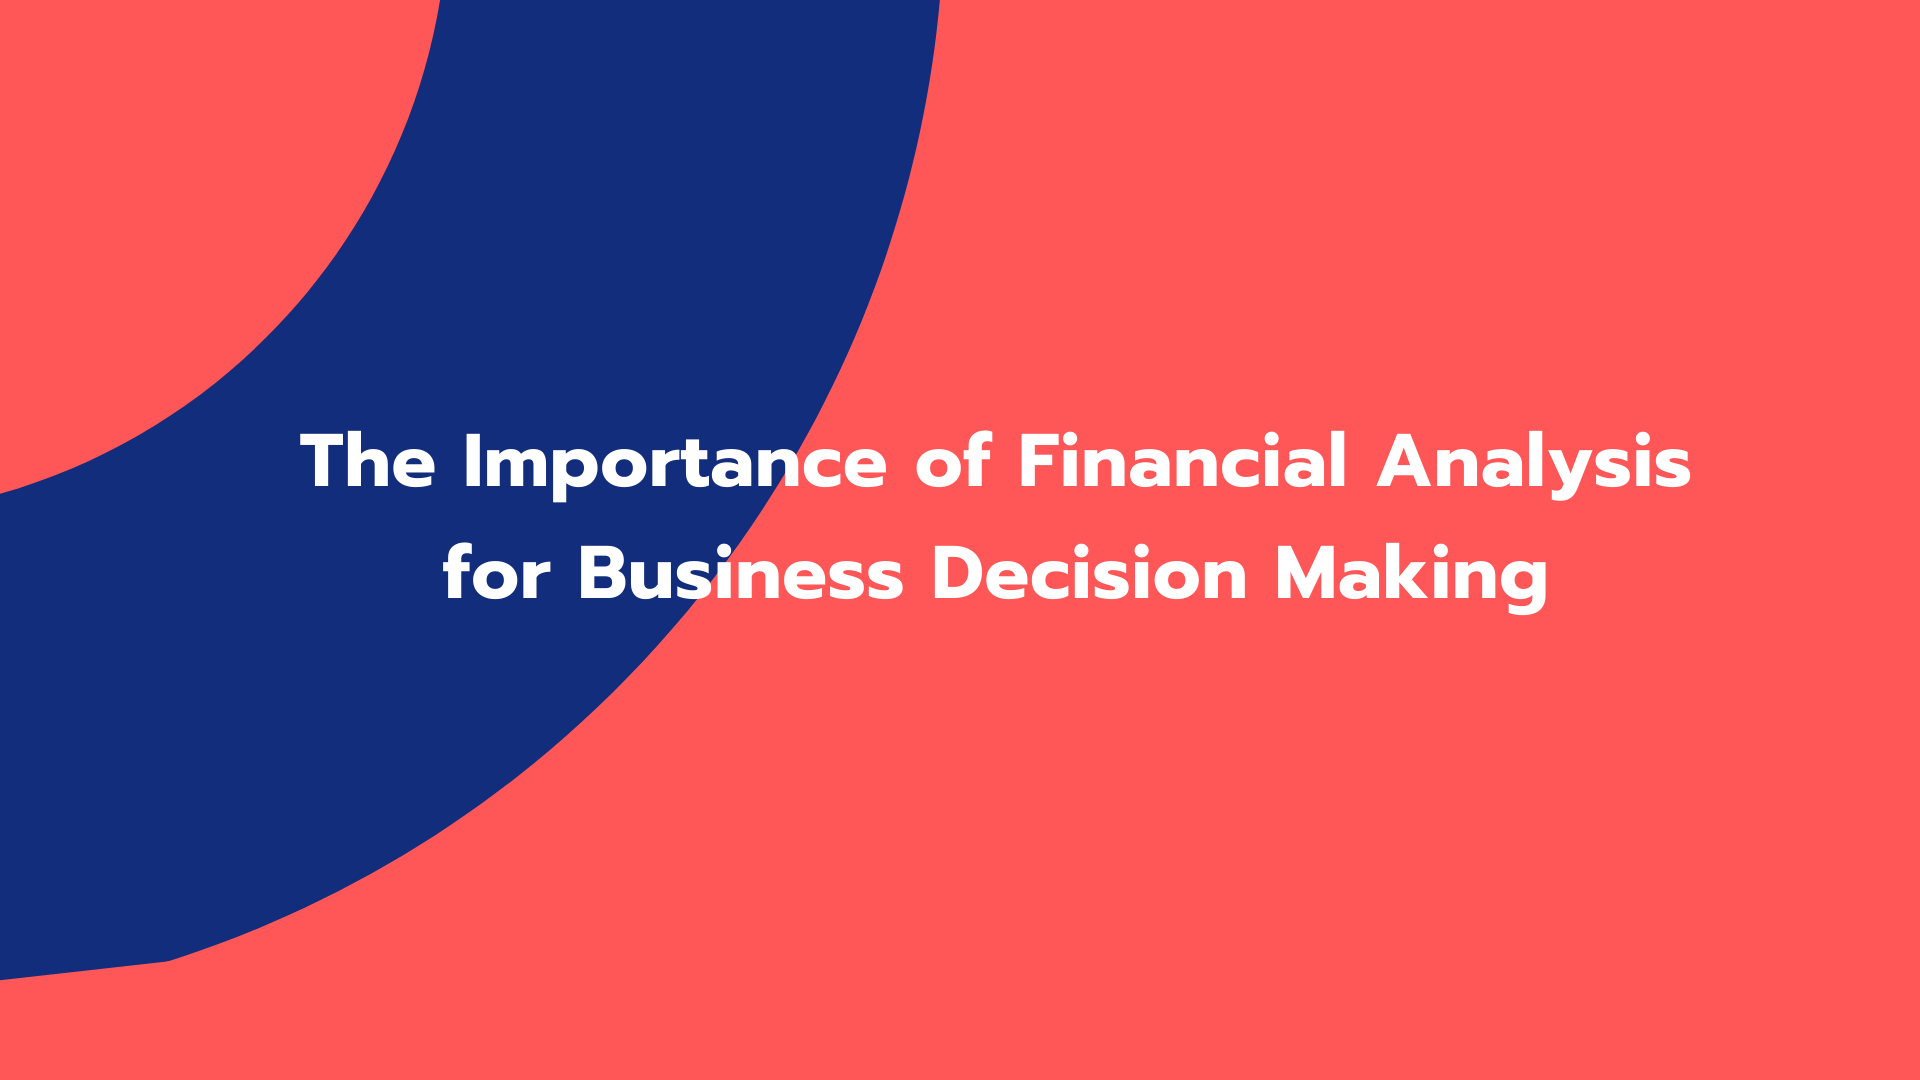 The Importance of Financial Analysis for Business Decision Making